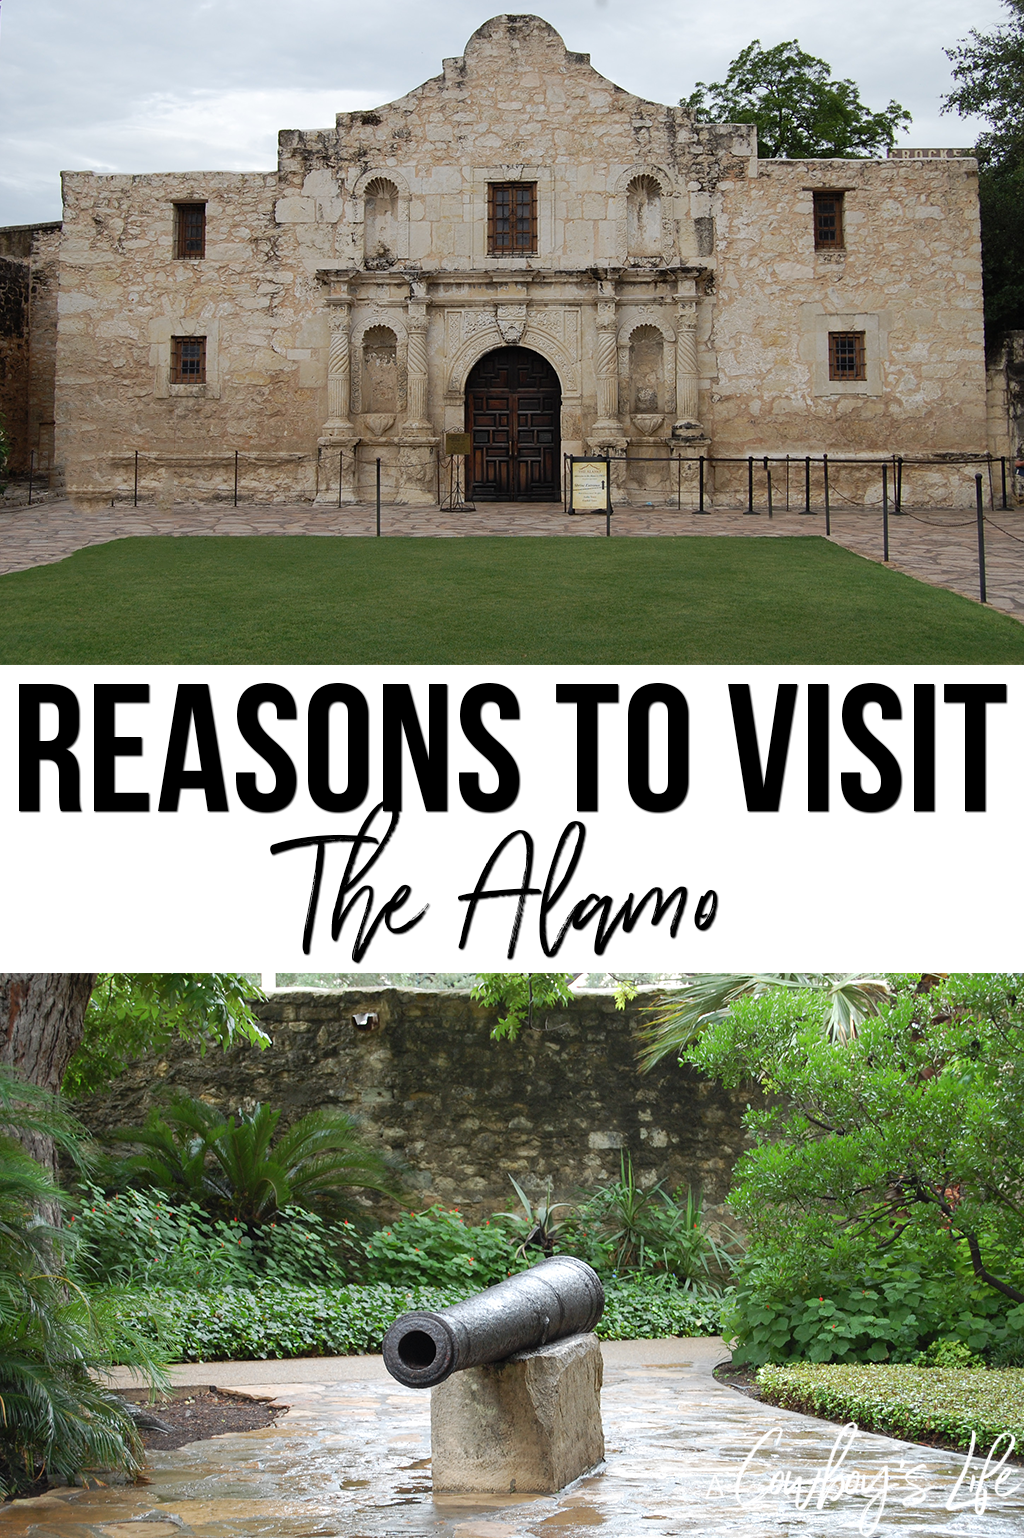 Guide to visiting the Alamo